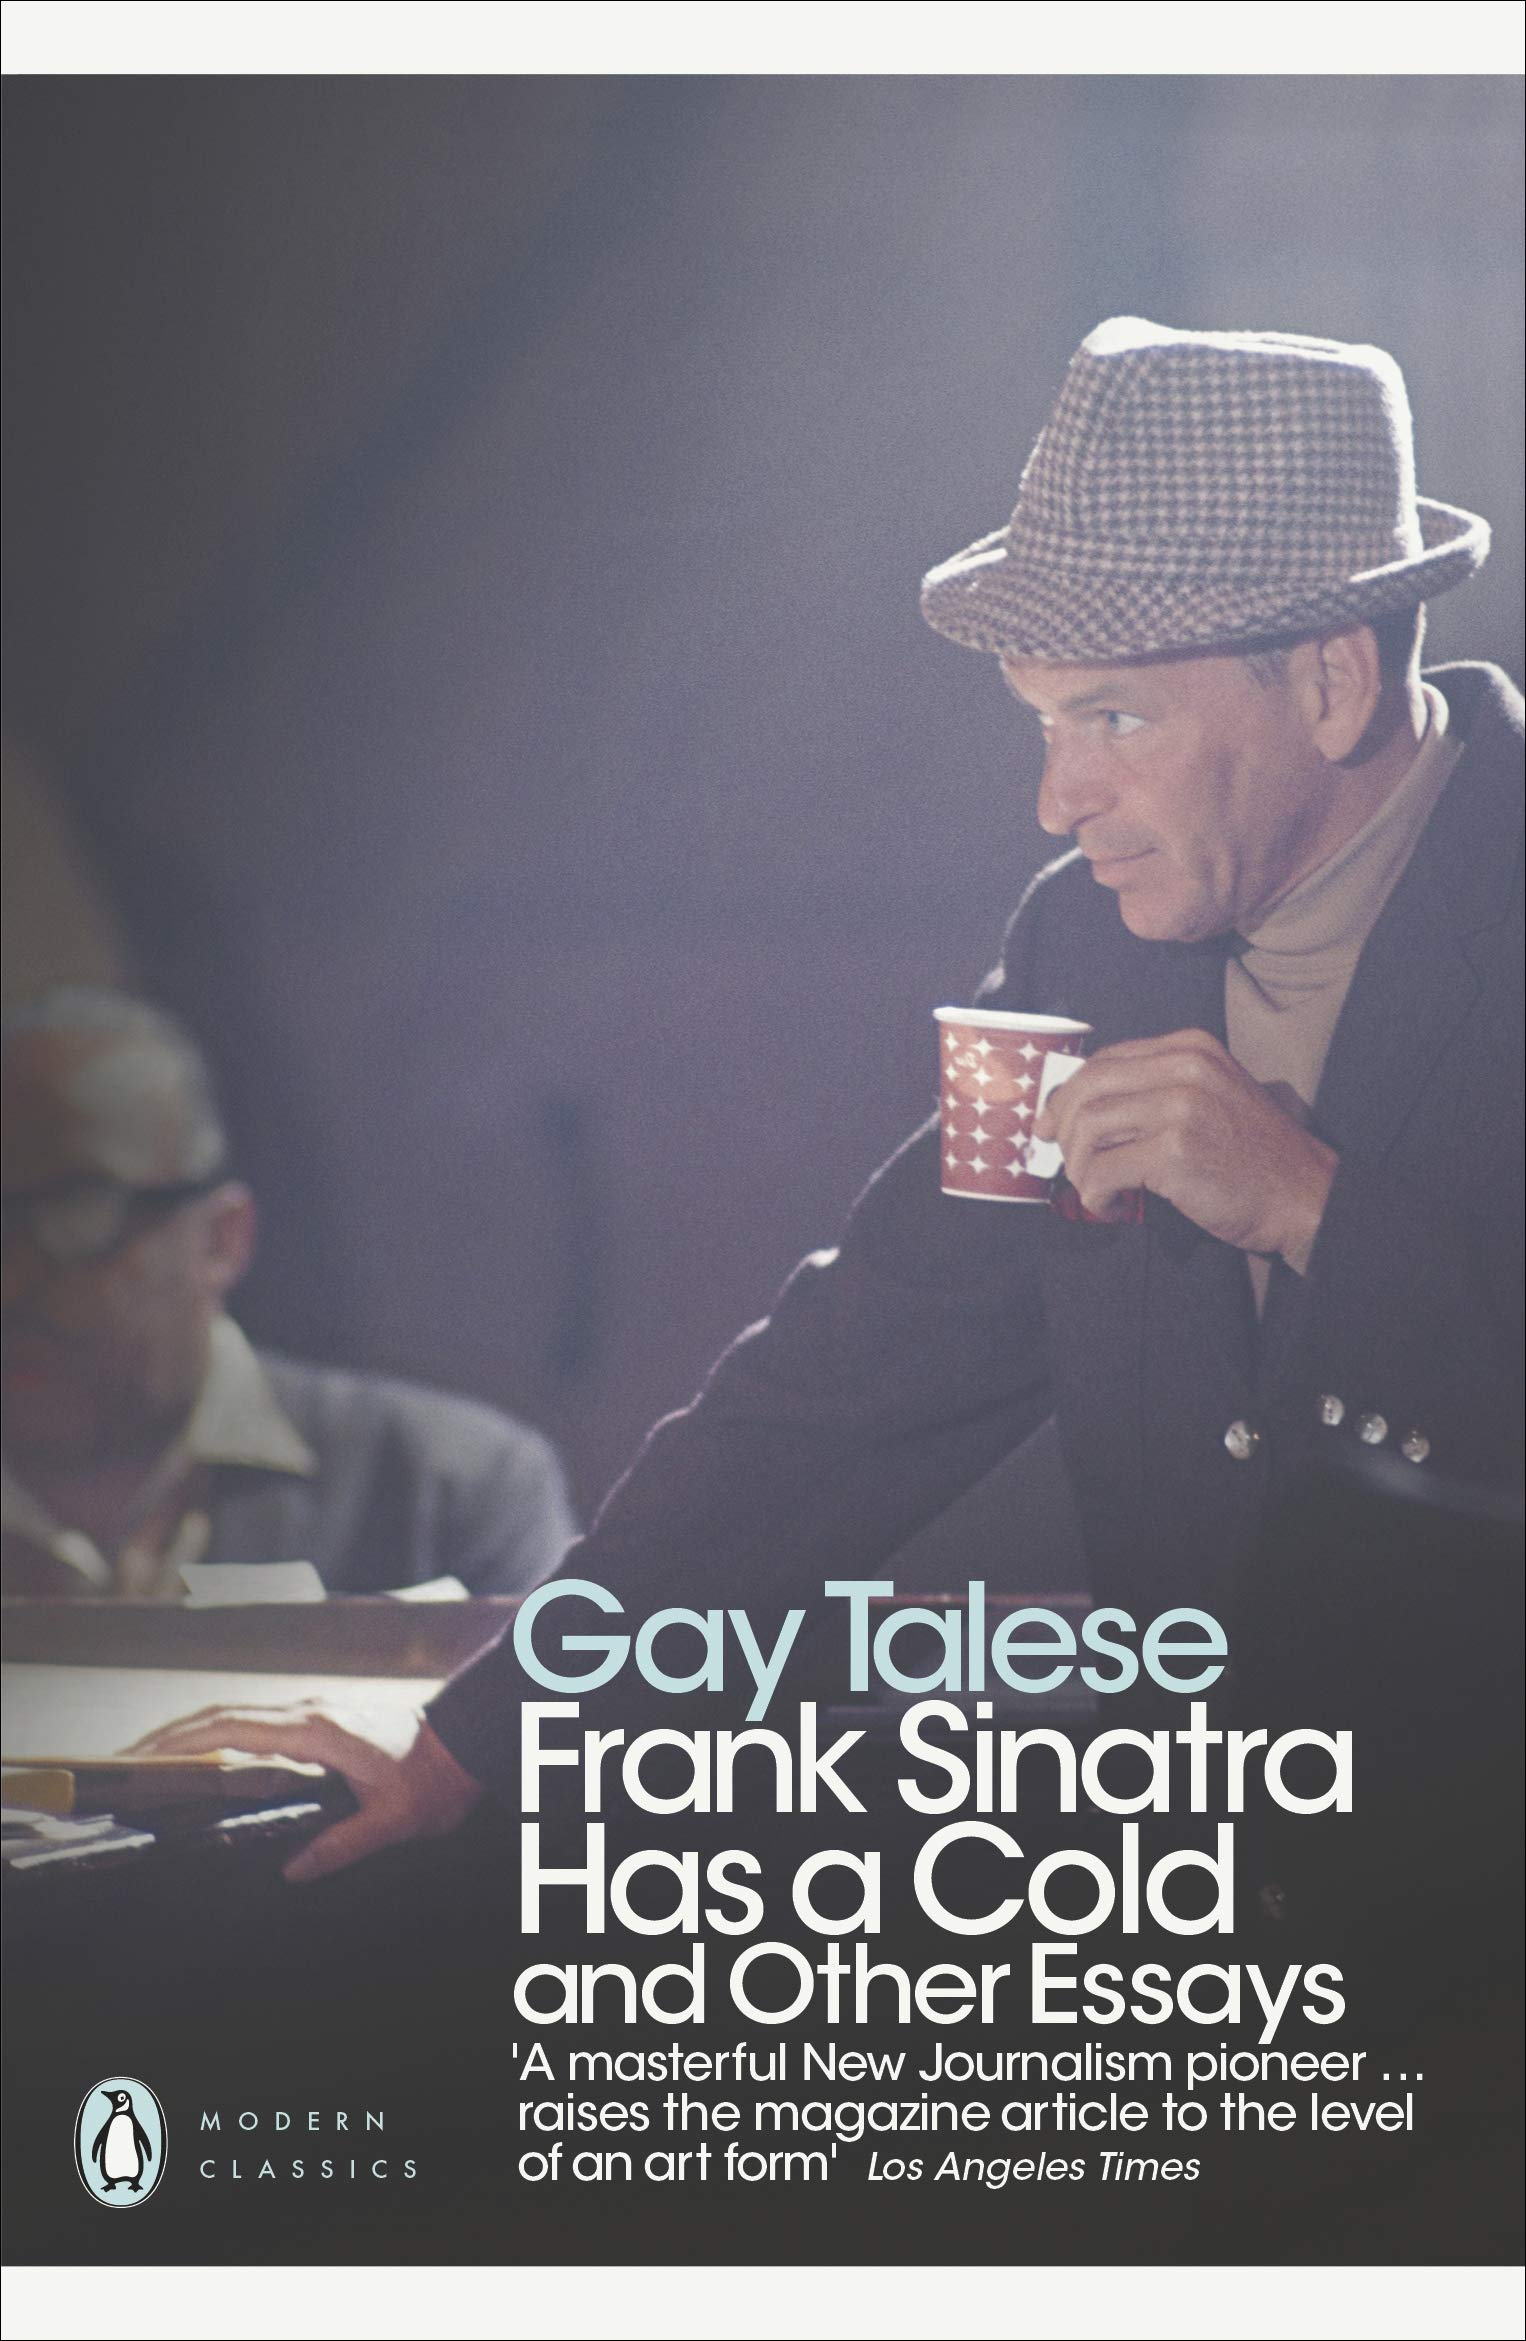 Frank Sinatra Has a Cold: And Other Essays (Penguin Modern Classics):  Amazon.co.uk: Talese, Gay: 9780141194158: Books